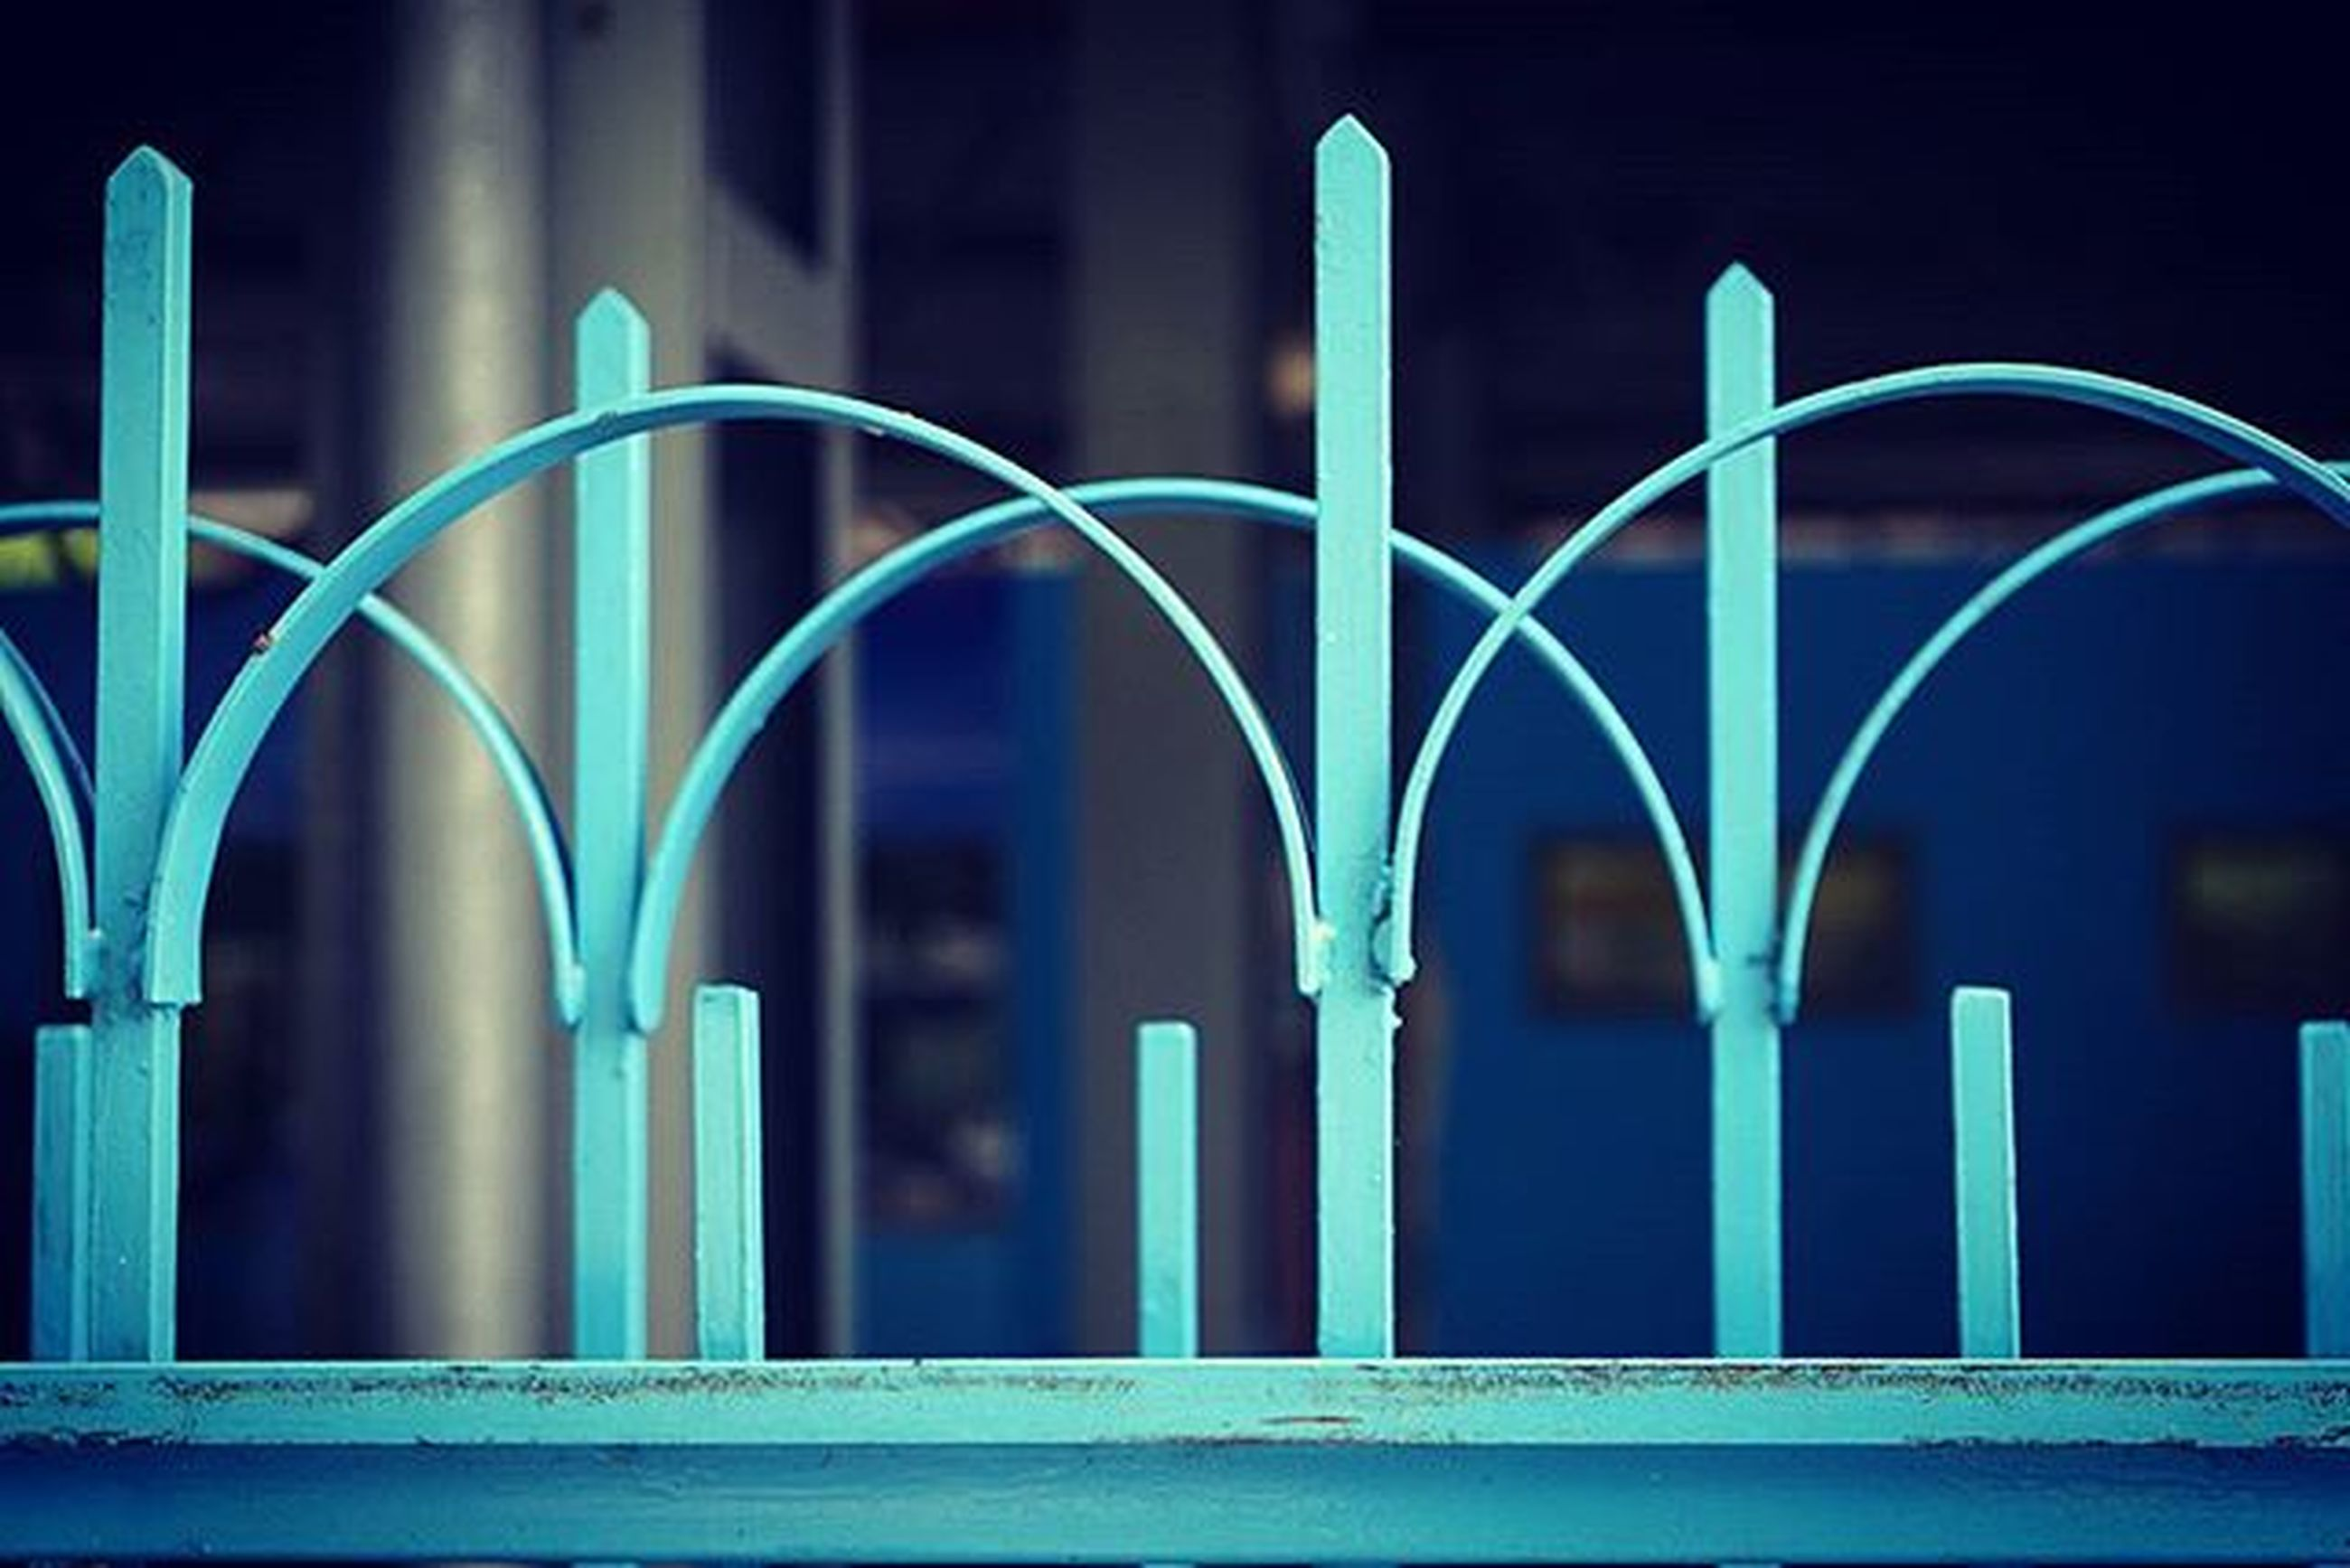 architecture, built structure, night, building exterior, blue, illuminated, arch, building, no people, outdoors, city, in a row, pattern, multi colored, window, circle, fence, gate, lighting equipment, railing